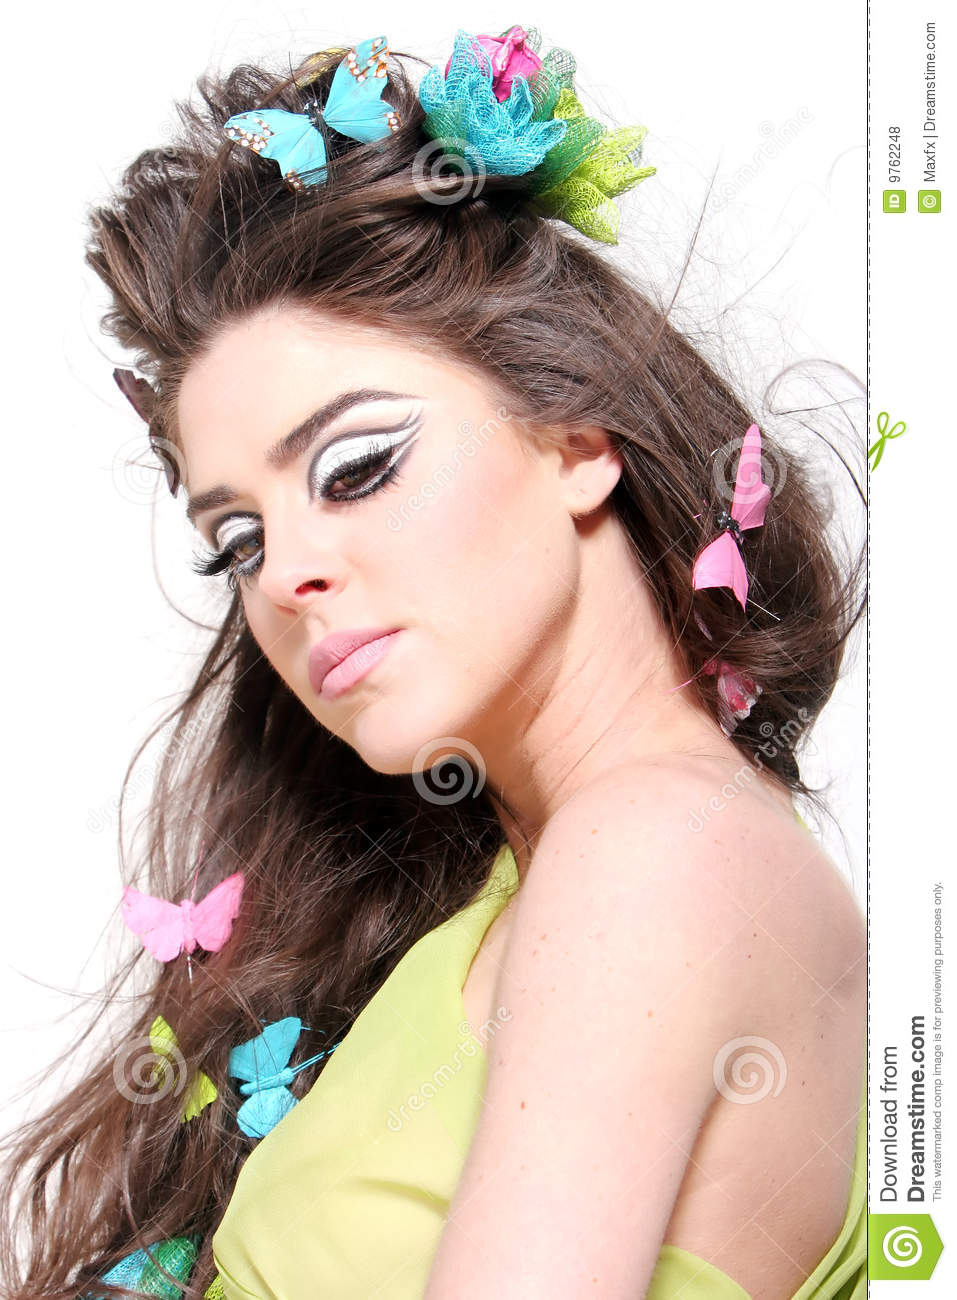 Hairstyle And Makeup Stock Photo Image Of Glamour Makeup 9762248